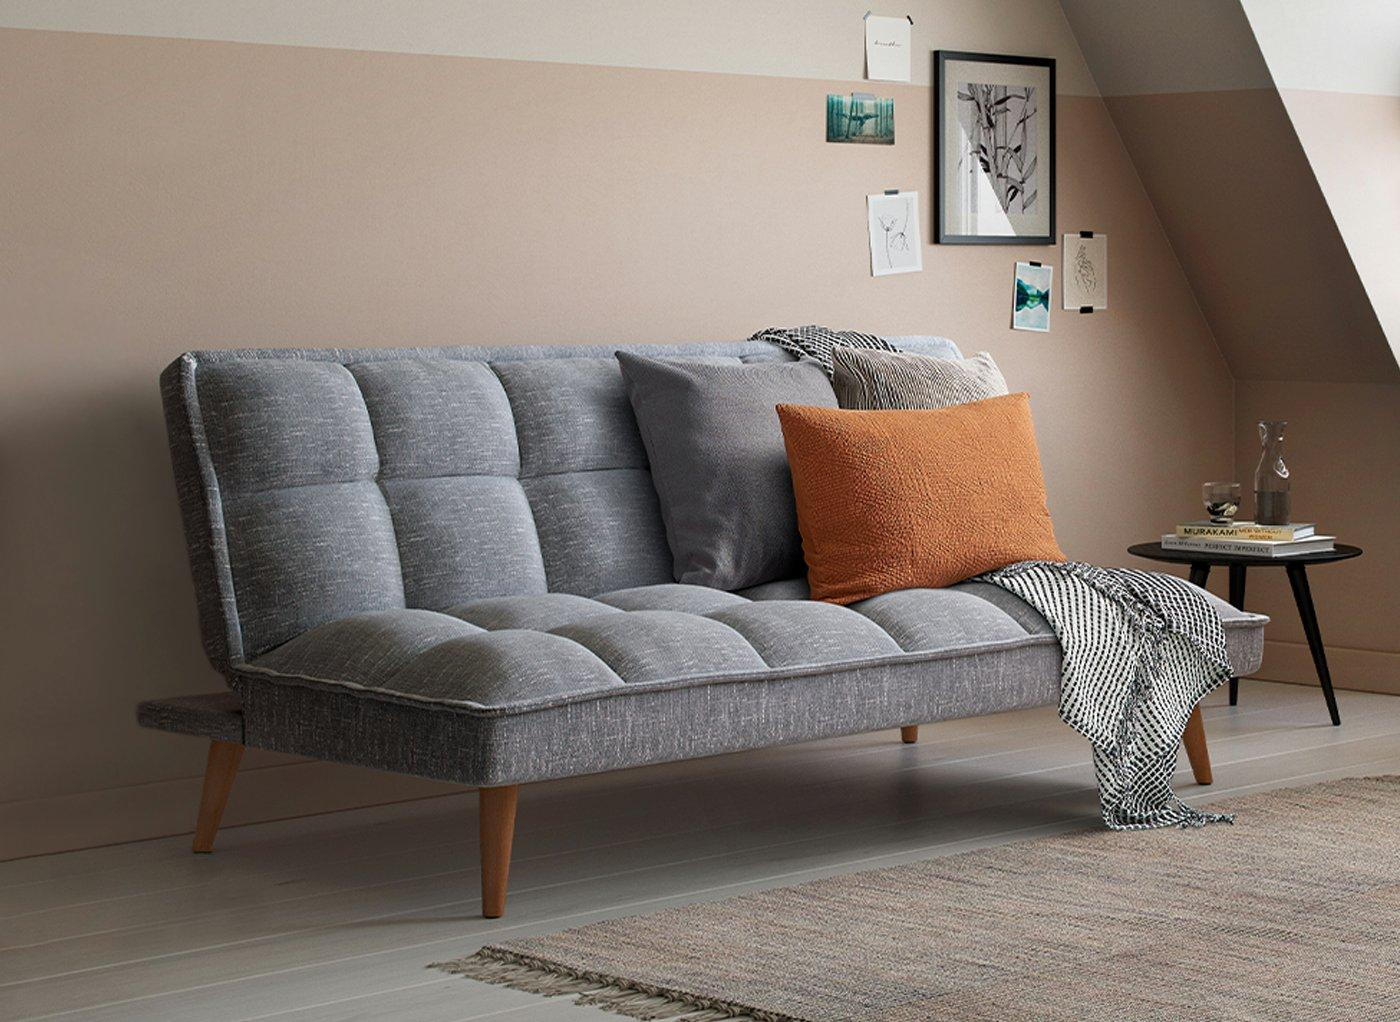 downpatrick-3-seater-clic-clac-sofa-bed